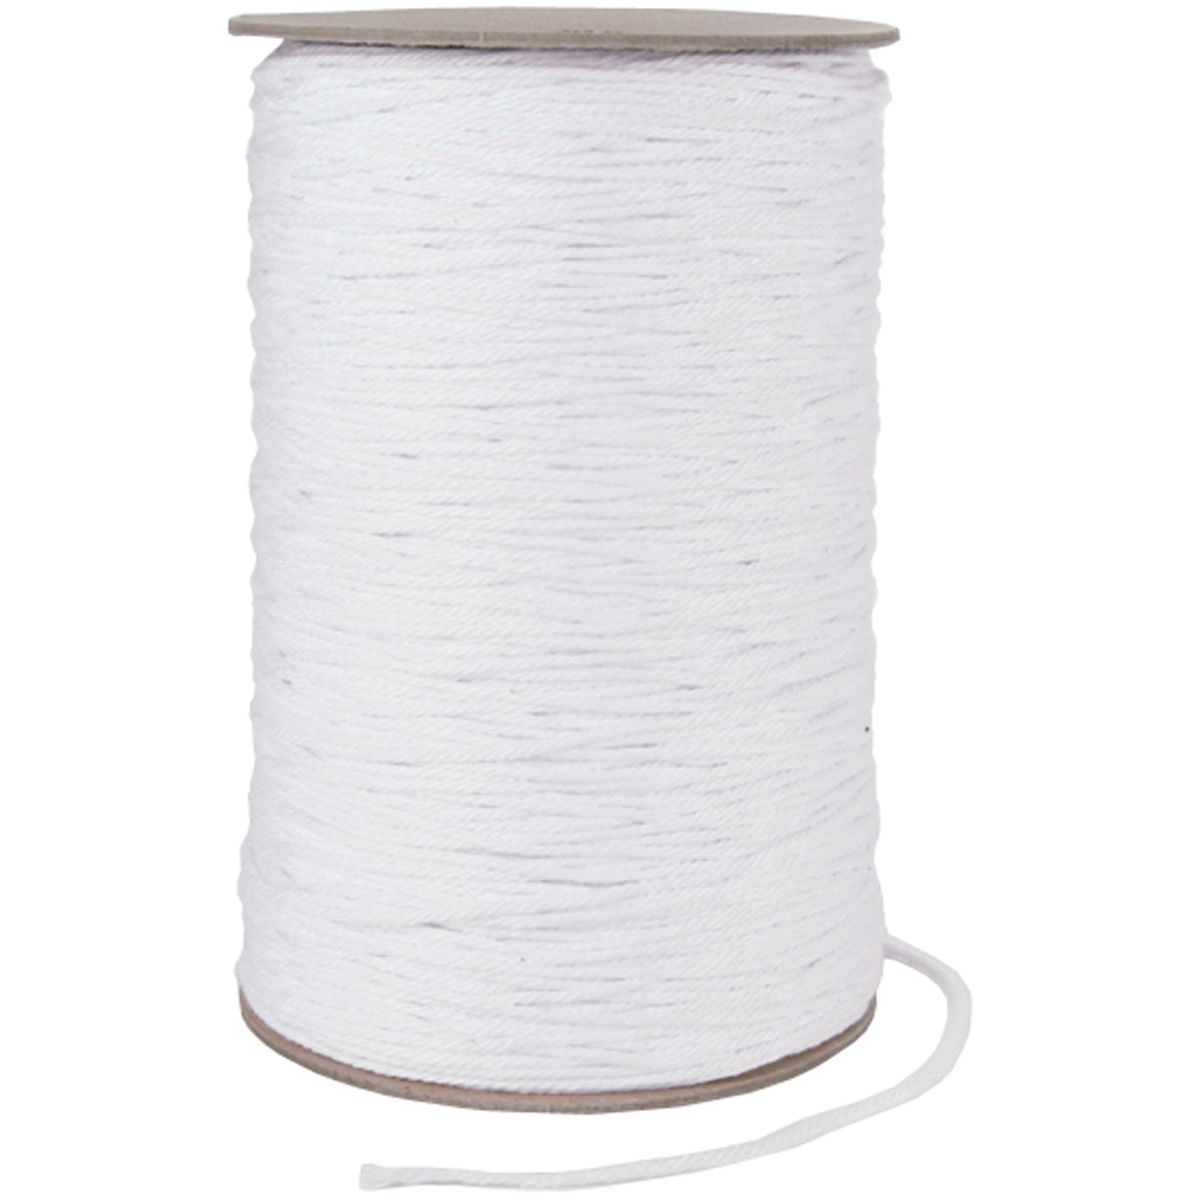 Cable Cord Size 50 288 Yards-White 1/8\u0022